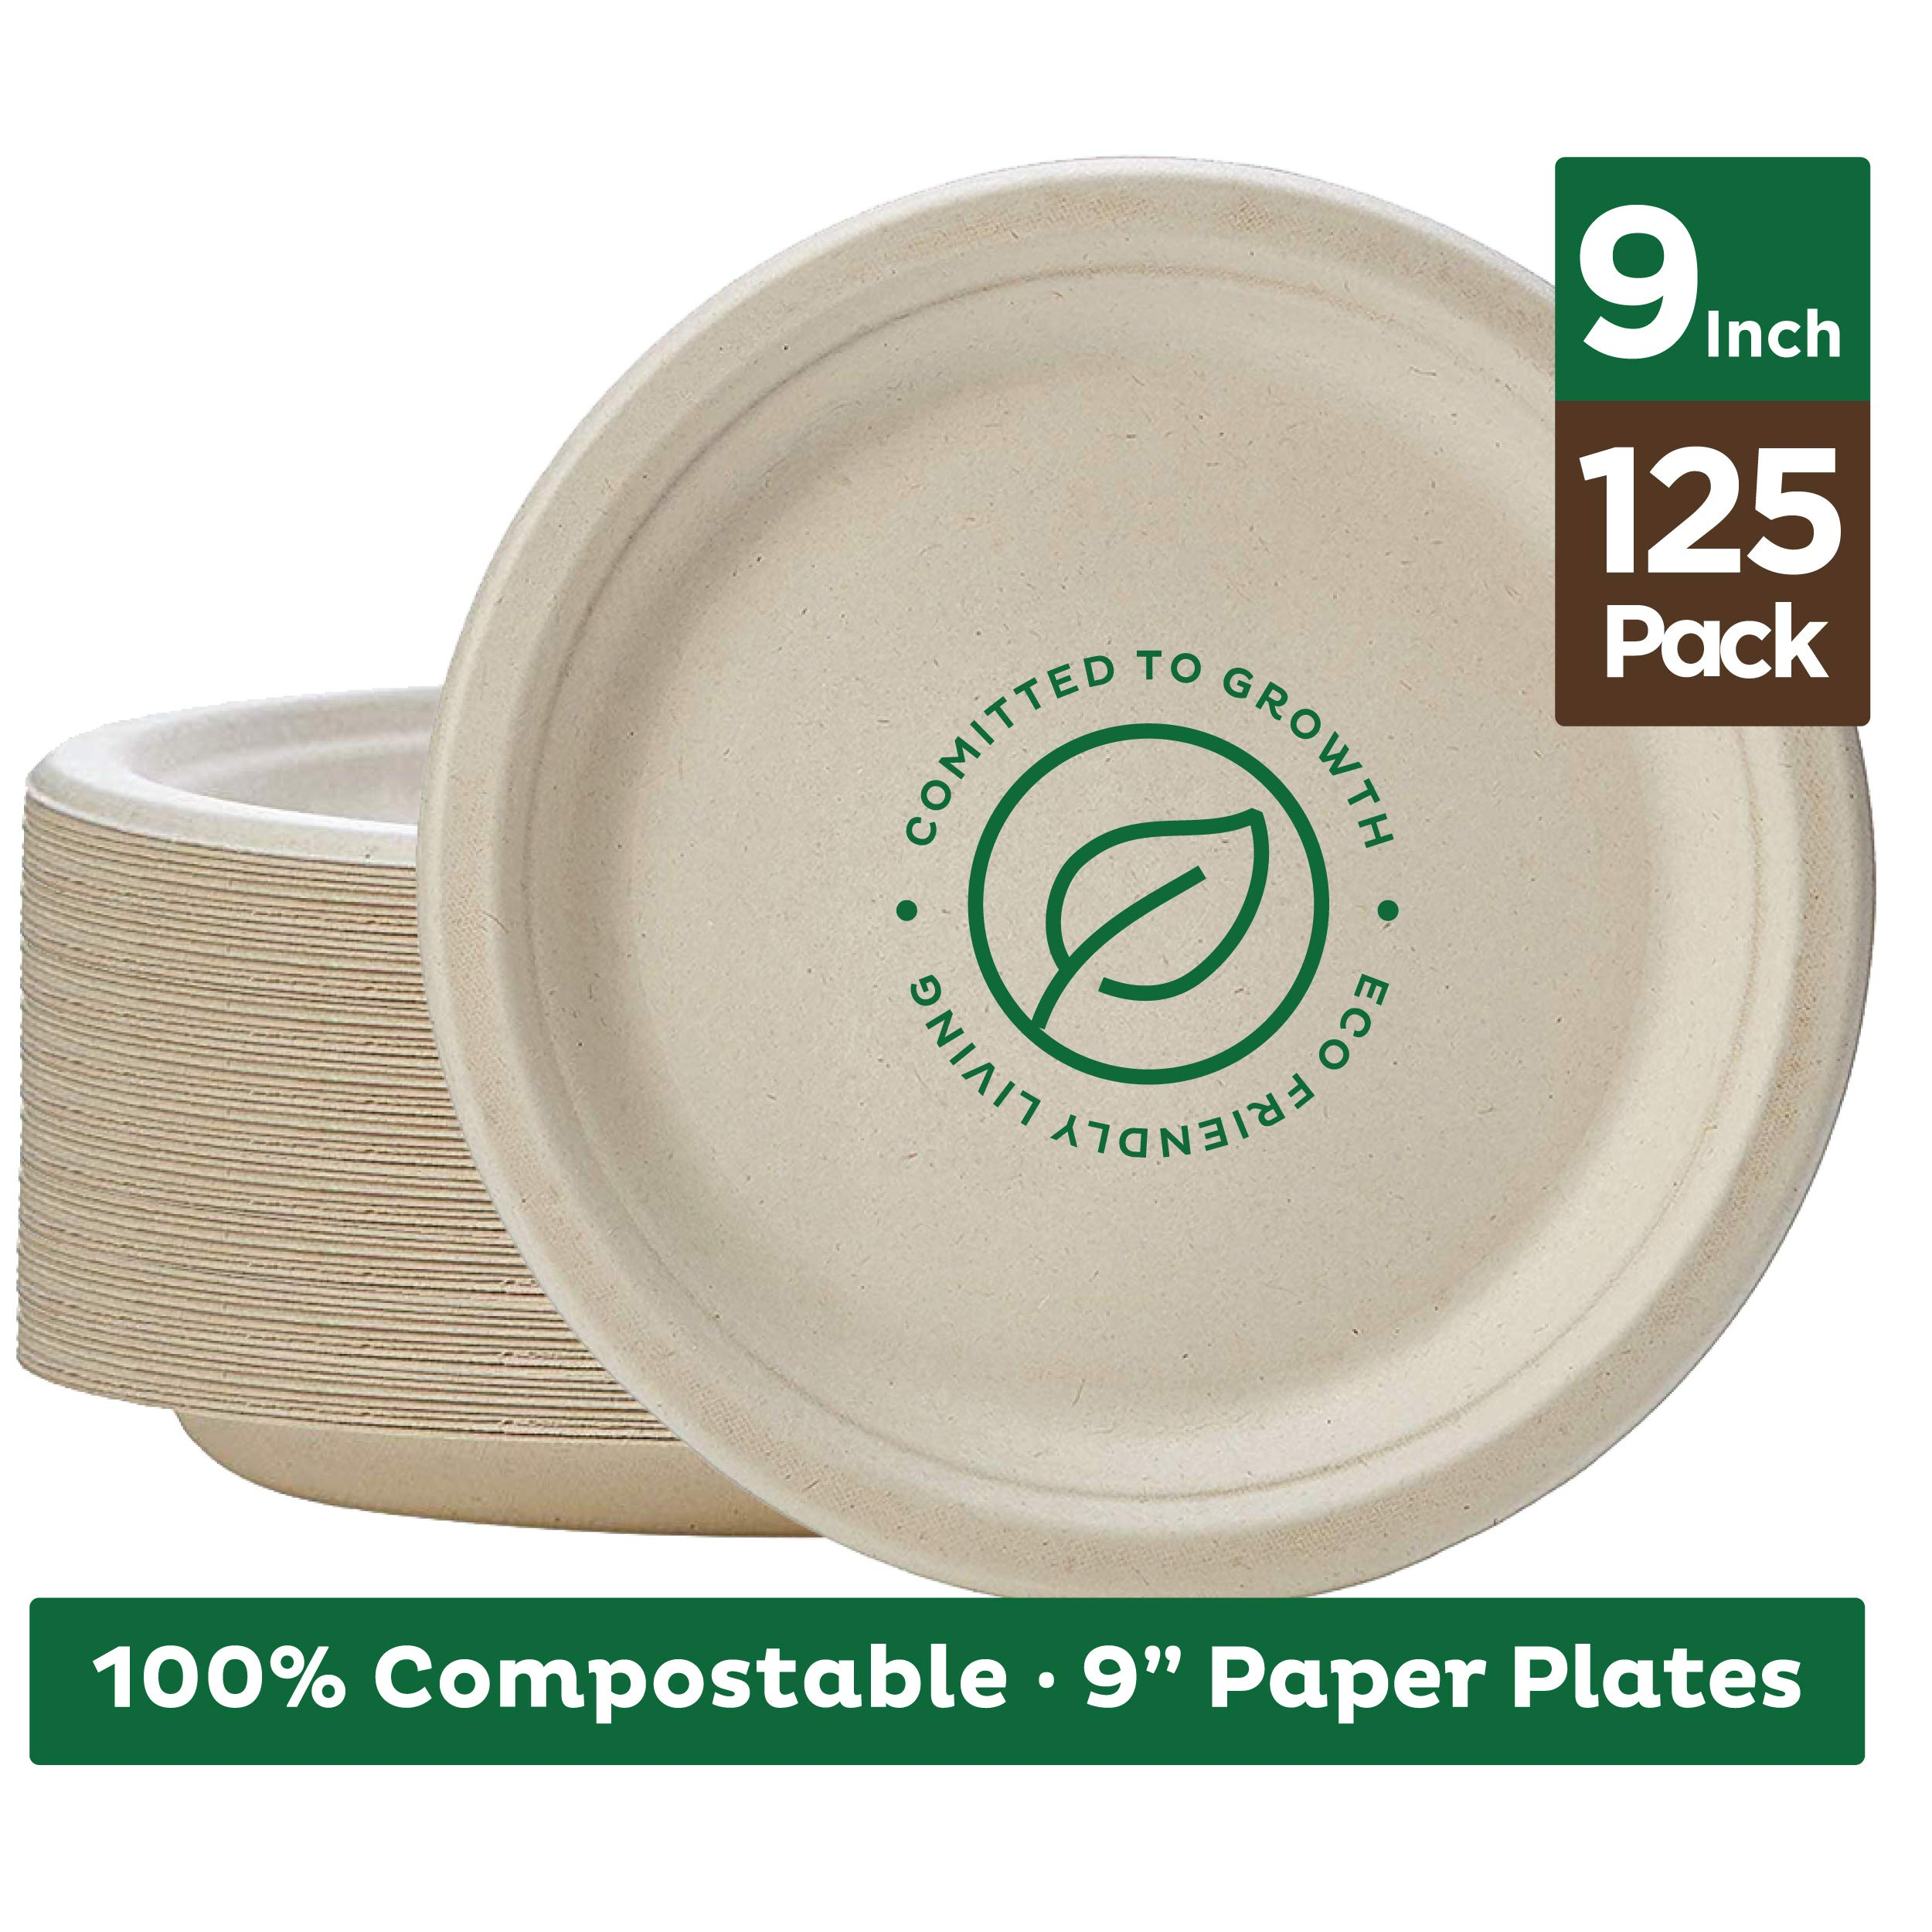 Stack Man 100% Compostable 9'' Paper Plates [125-Pack] Heavy-Duty Quality Natural Disposable Bagasse, Eco-Friendly Made of Sugar Cane Fibers, 9 inch, Brown by Stack Man (Image #1)